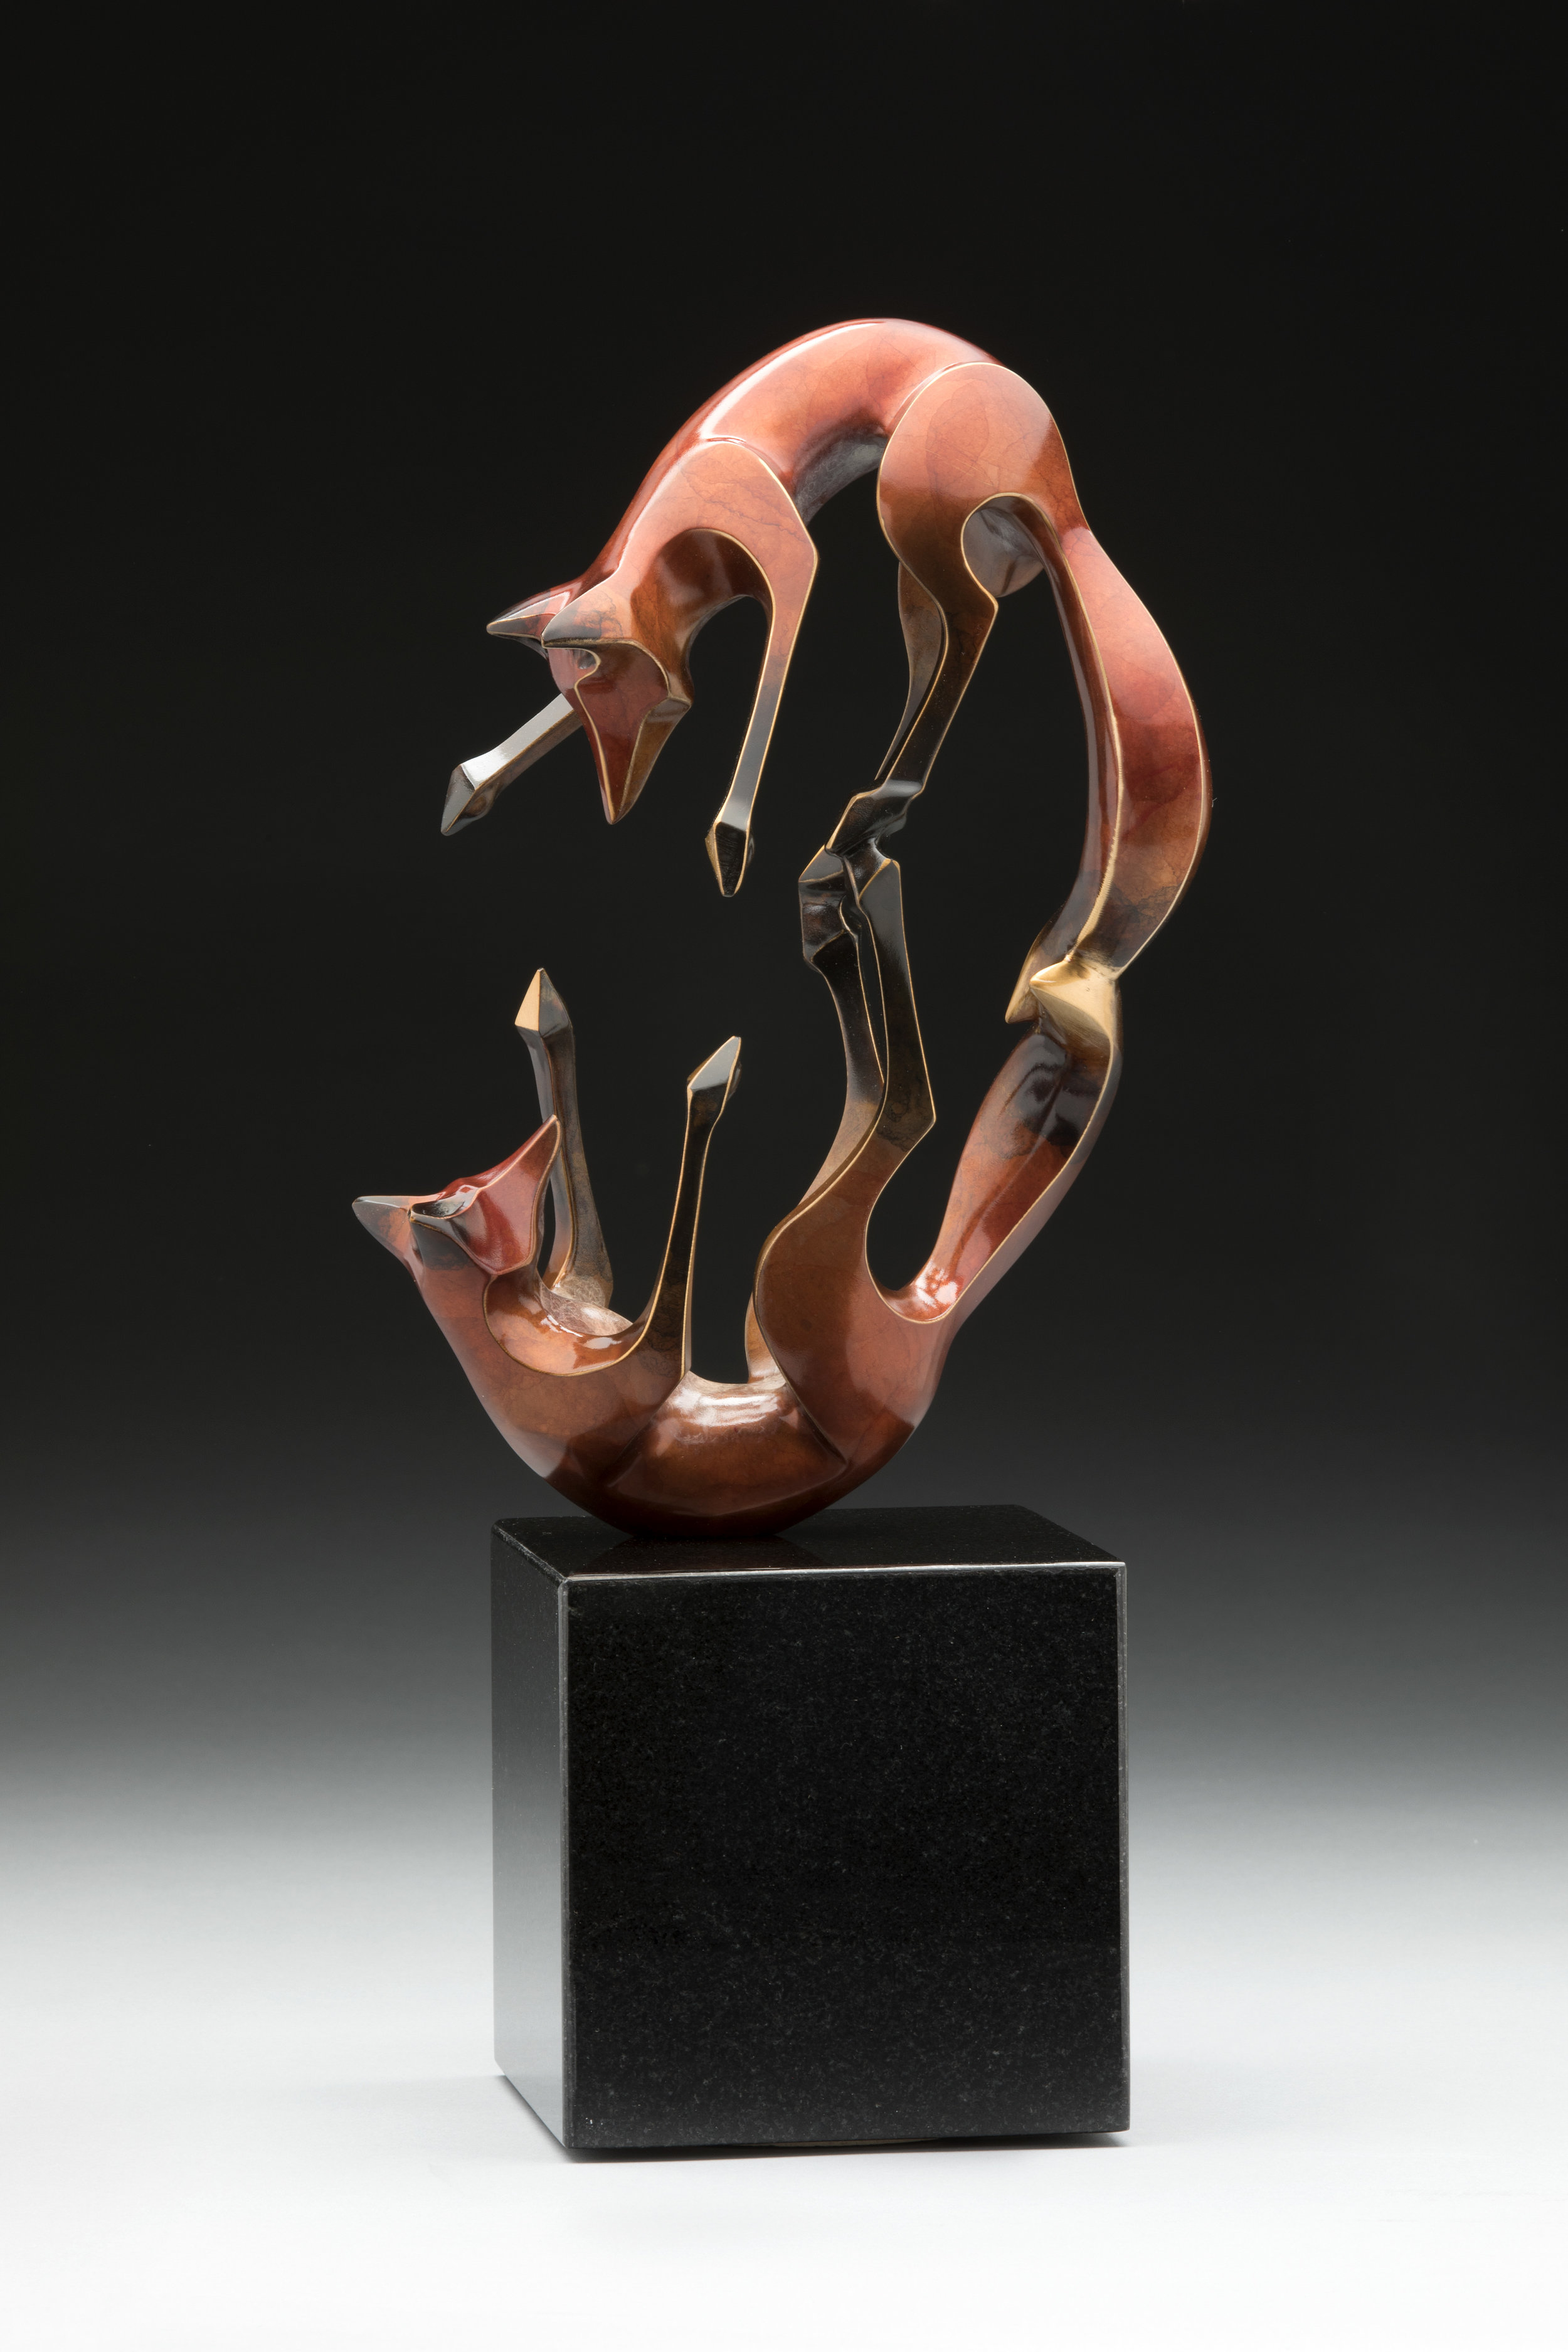 Laurel Peterson Gregory - http://www.laurelpetersongregory.comAll pieces are limited-edition bronzes. Complex patinas complement clean lines and strong motion. The artist is involved every aspect of the creation from the original design to the completed piece.